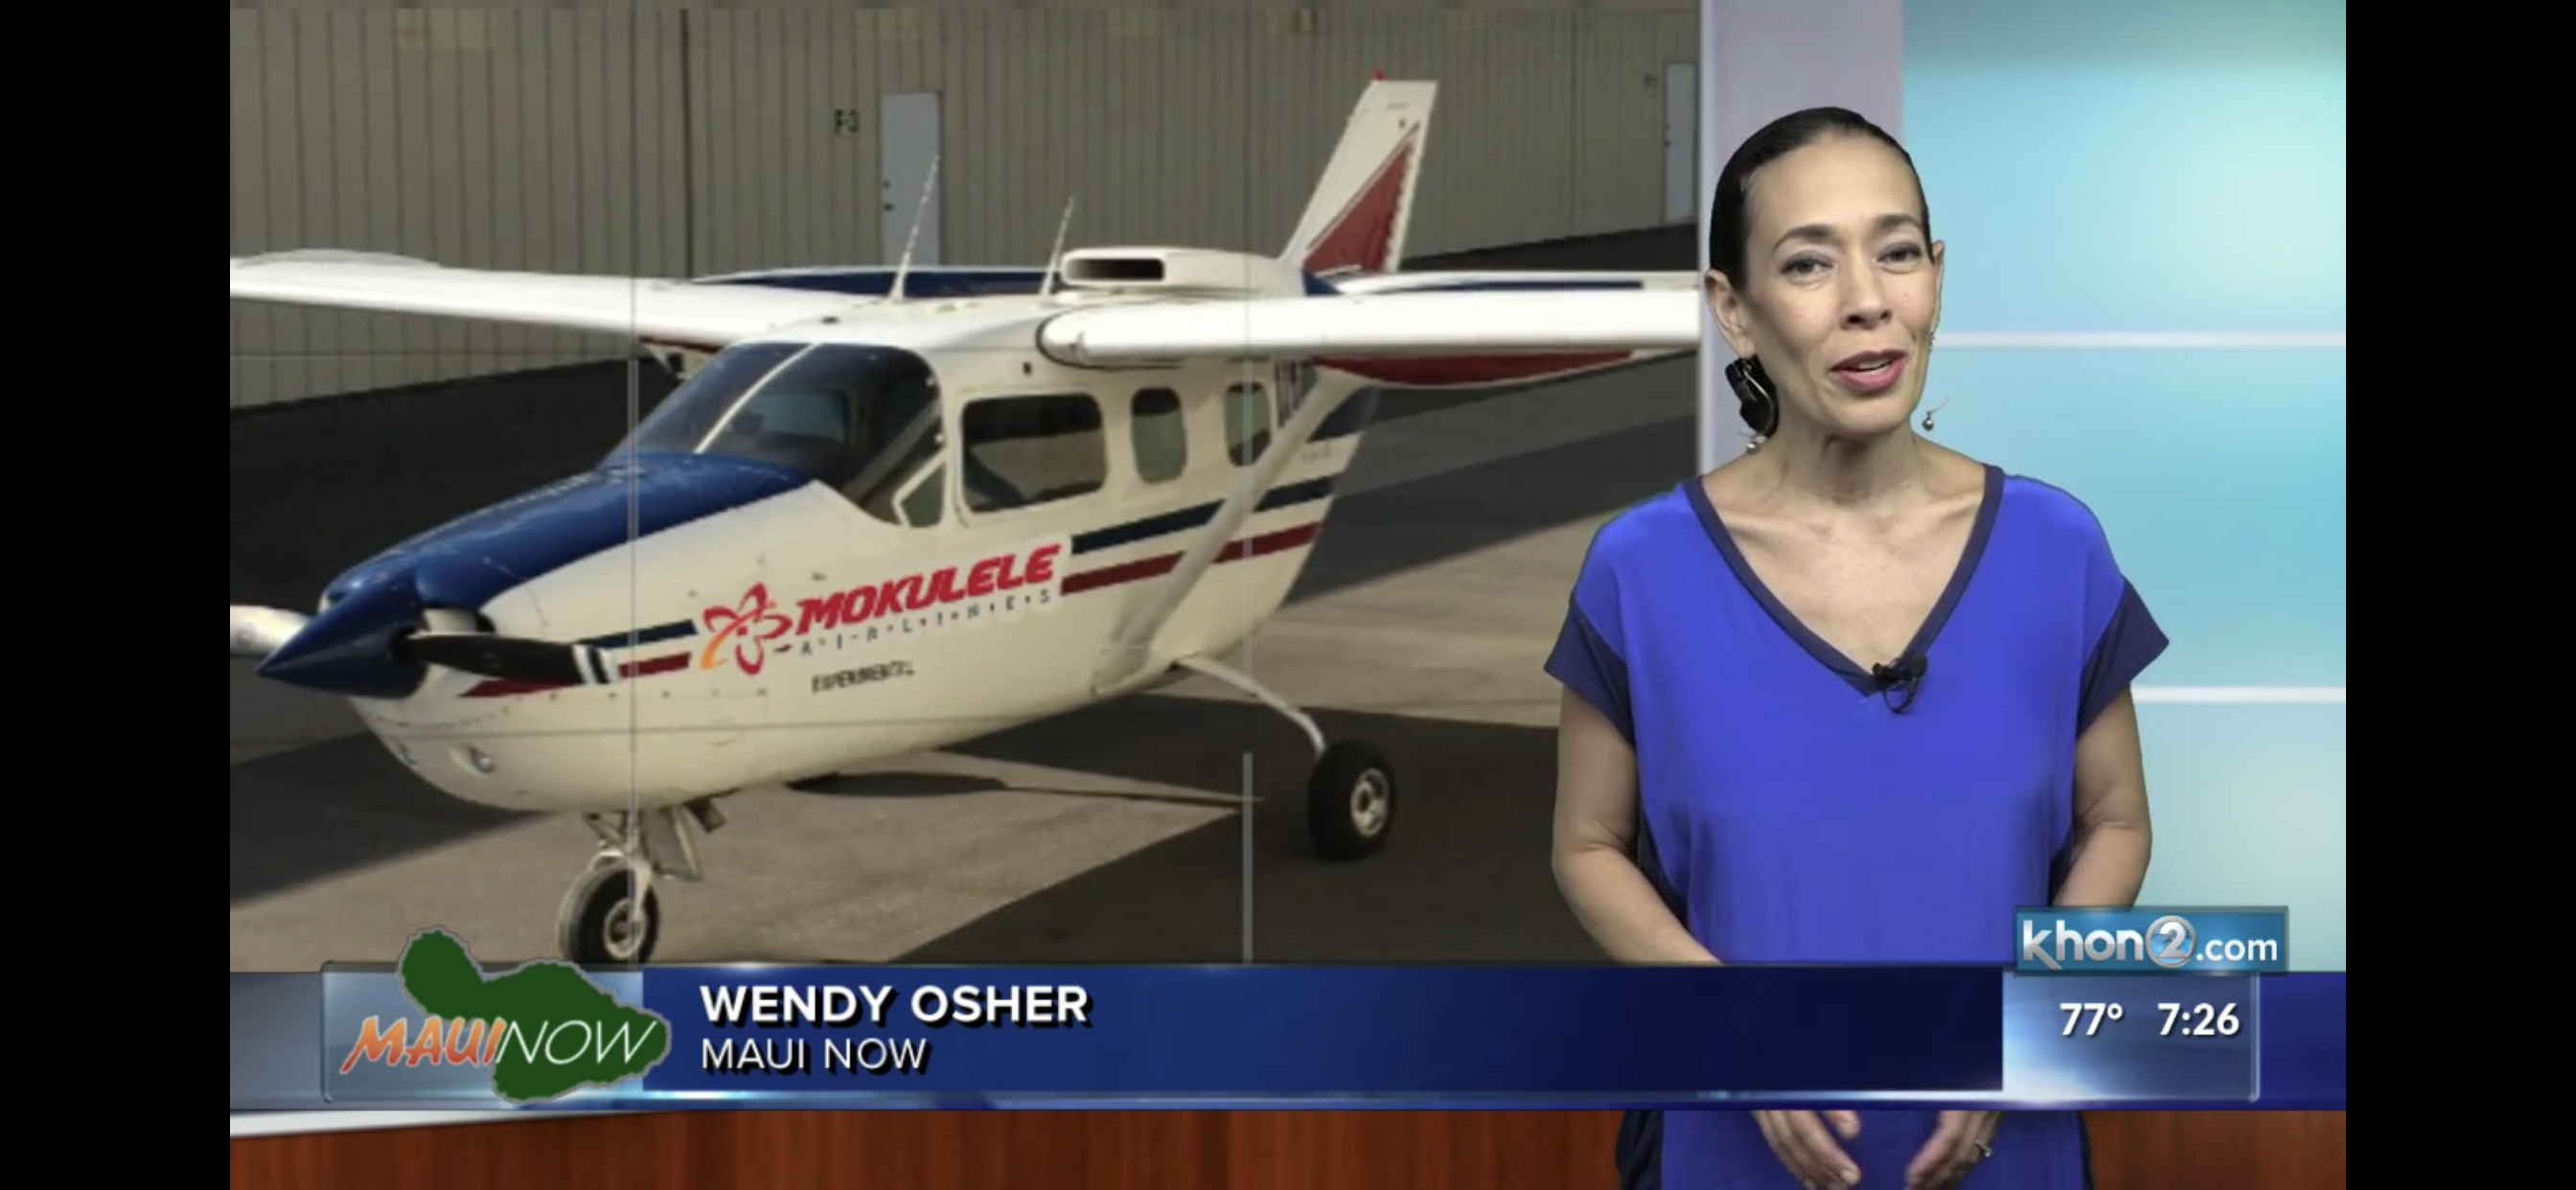 Hybrid Electric Plane Test Flights Planned on Maui